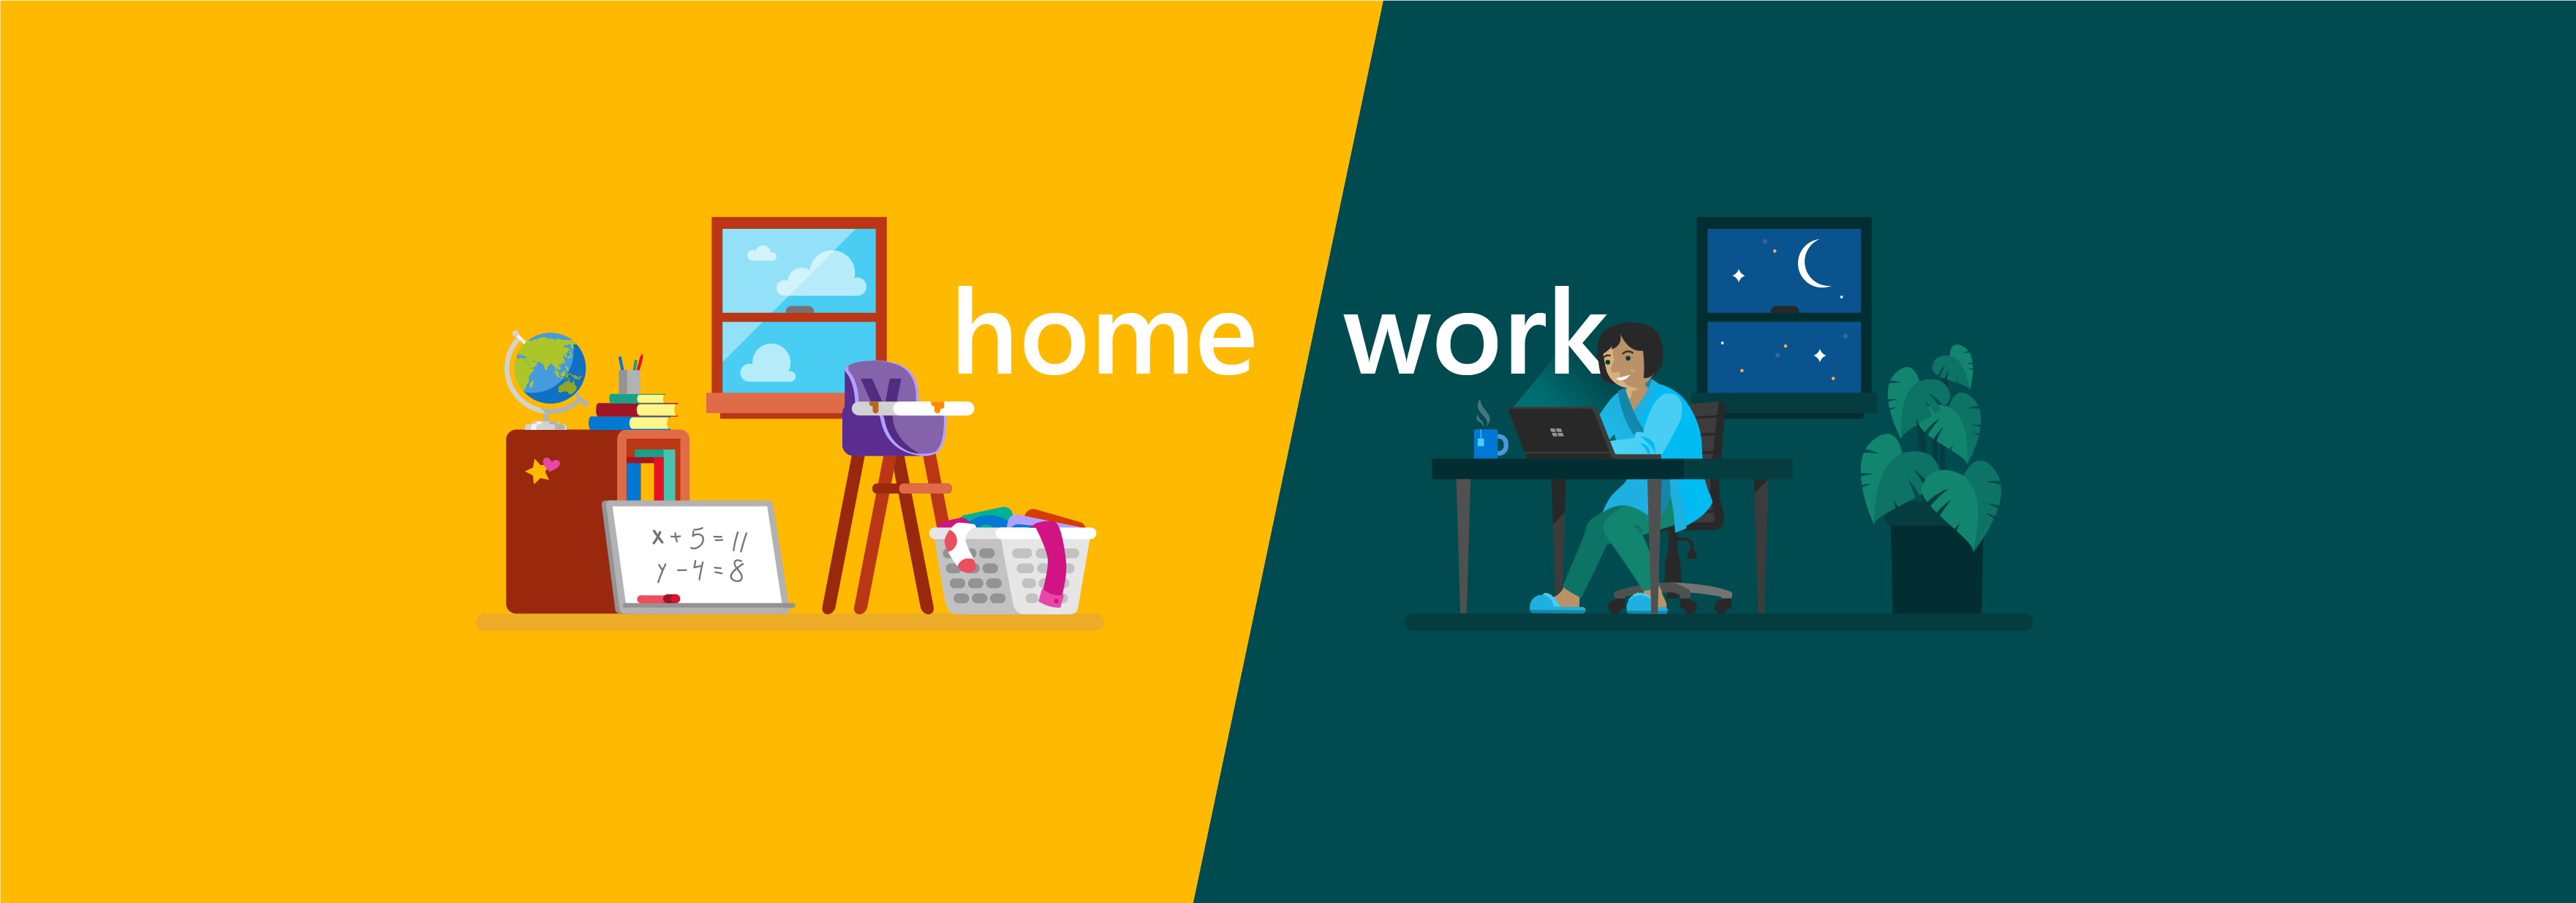 Illustration of a messy house and employee working at night represent work-life balance